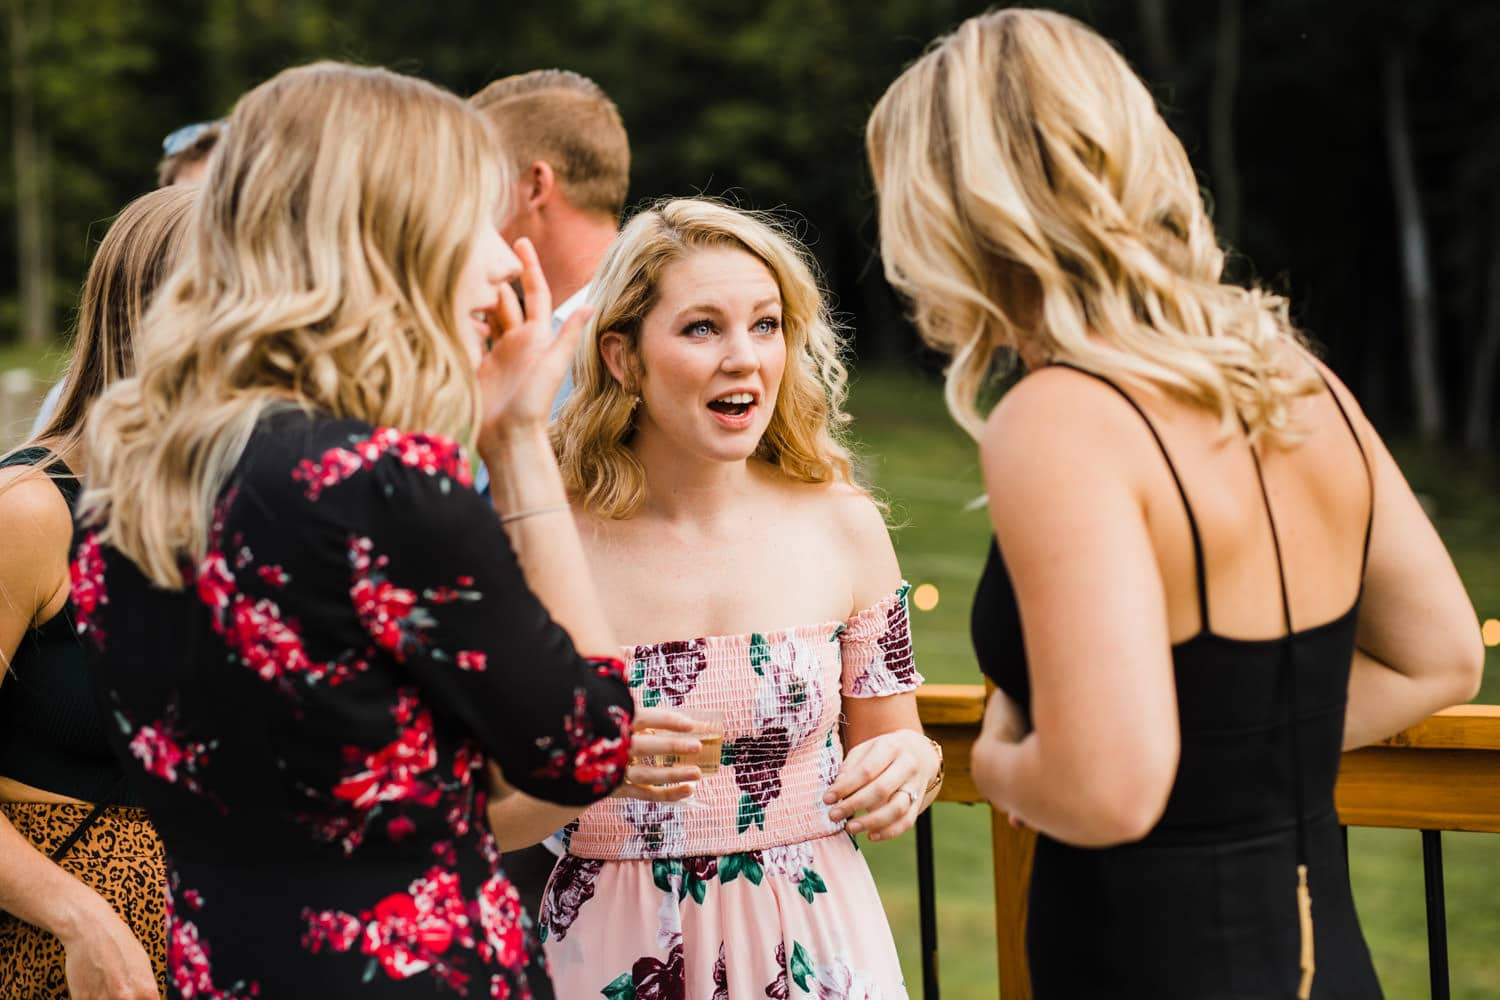 guests react after outdoor wedding - ottawa